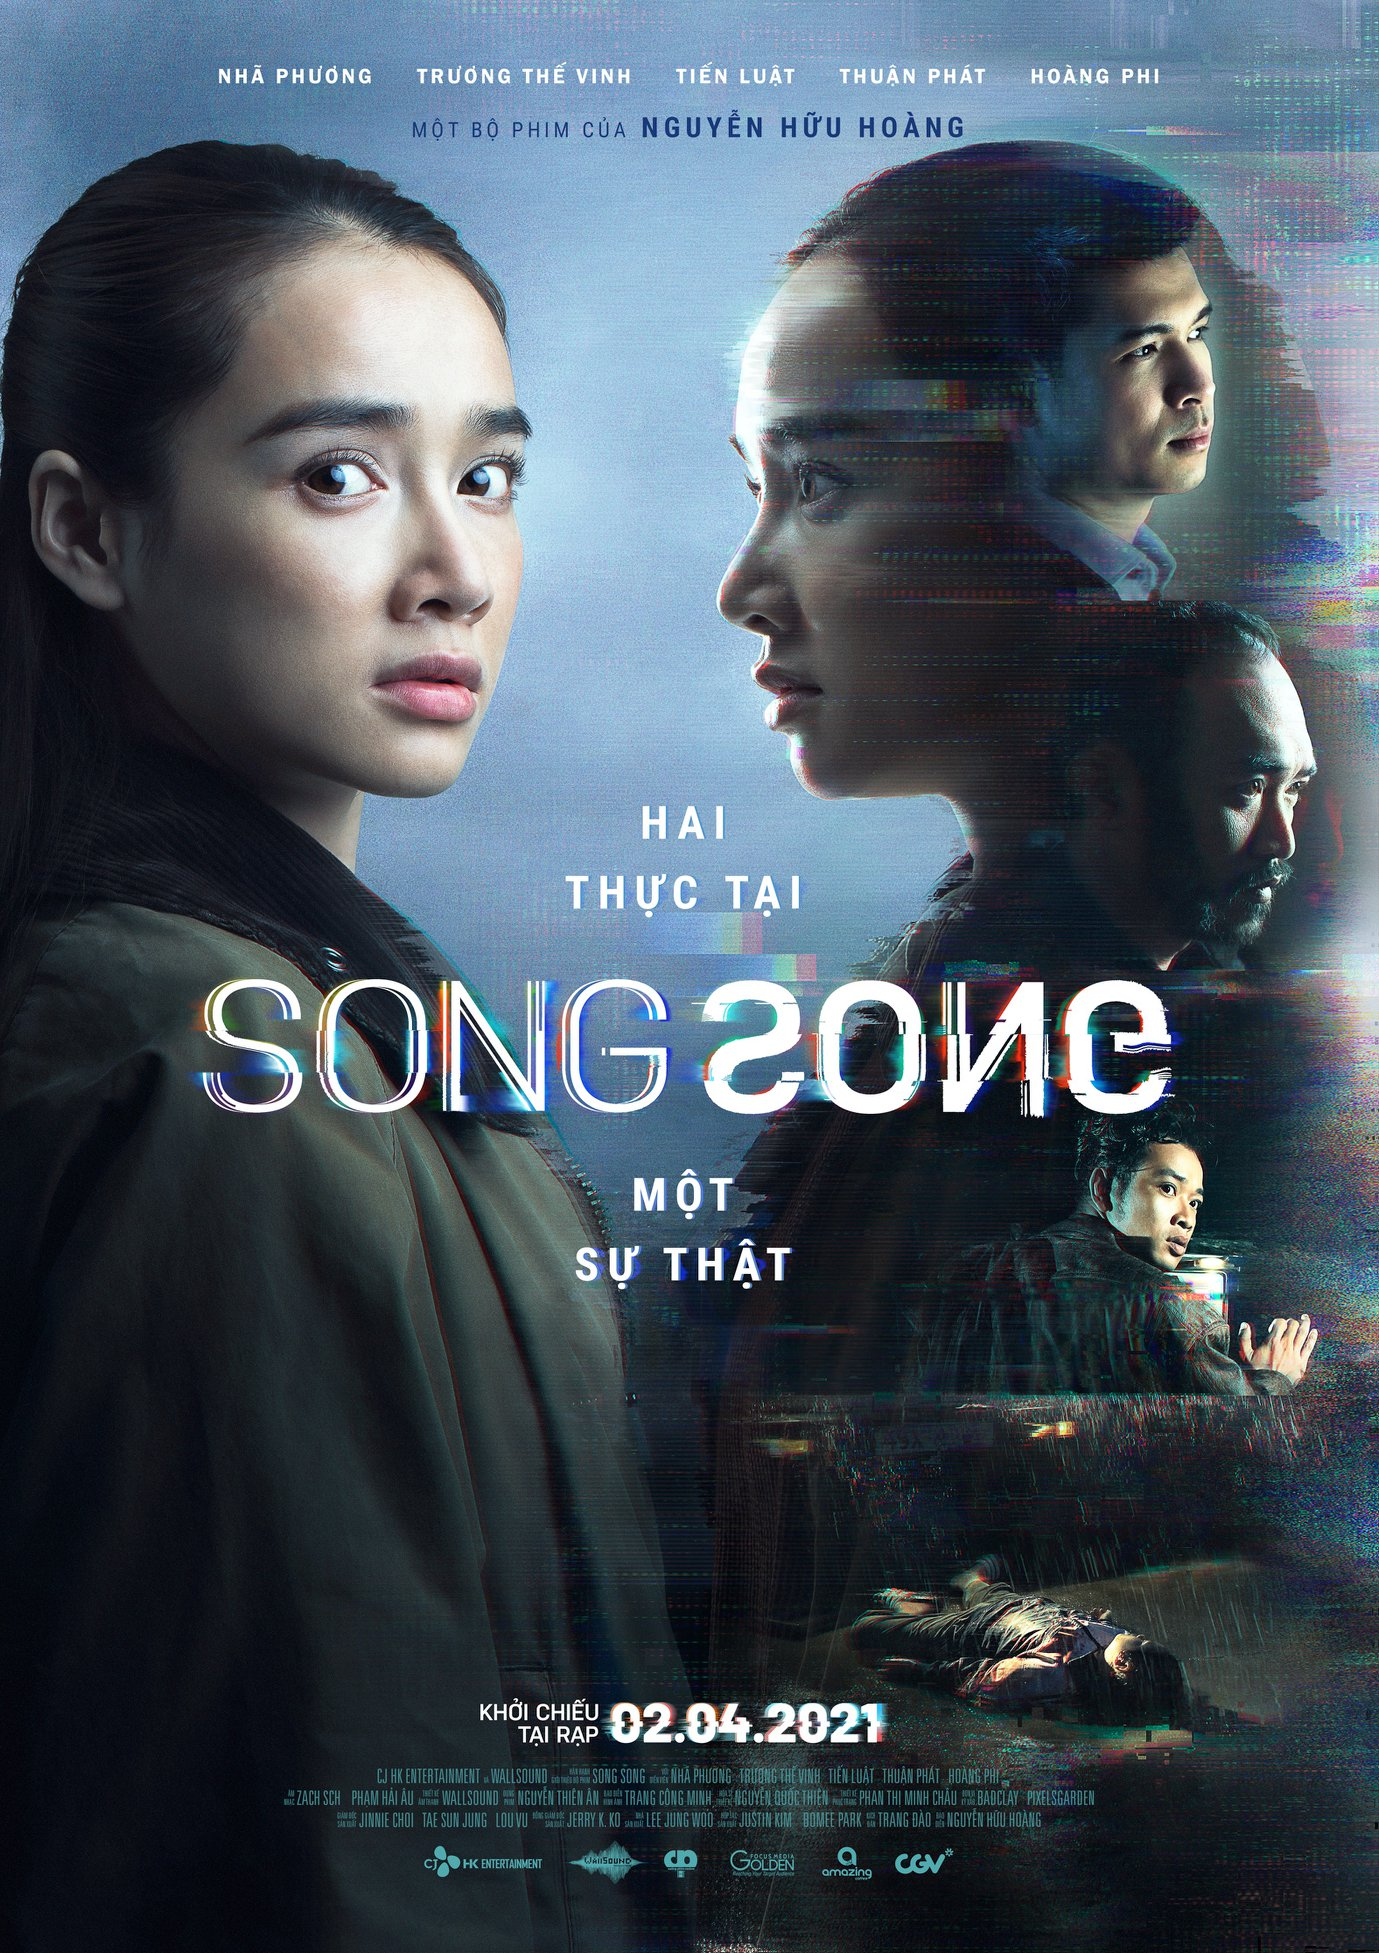 SONG SONG [NC16]